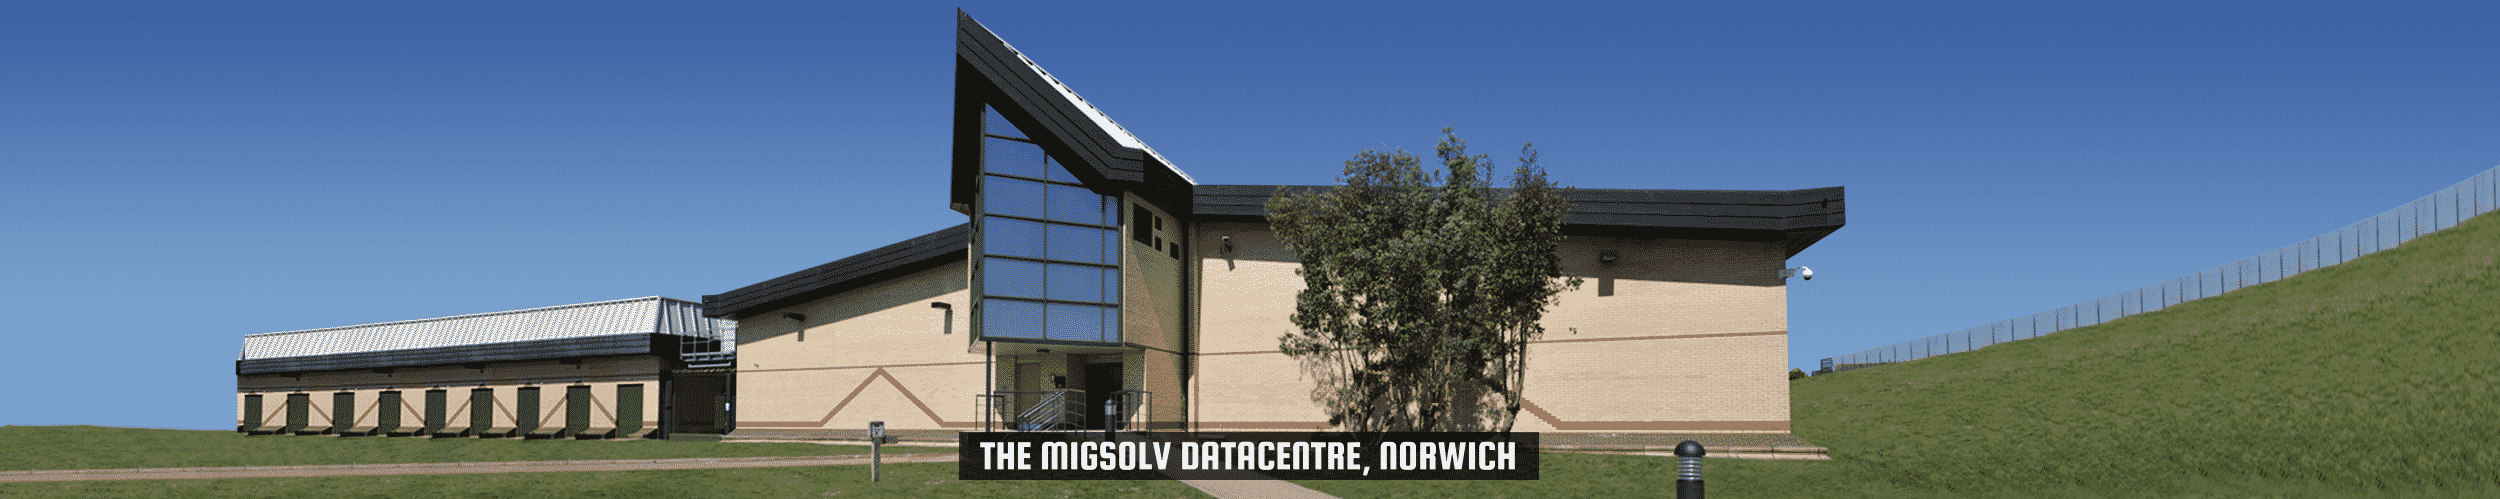 "52Degrees datasenter - funksjon bilde | ""Migsolv Data Center, Norwich"" 